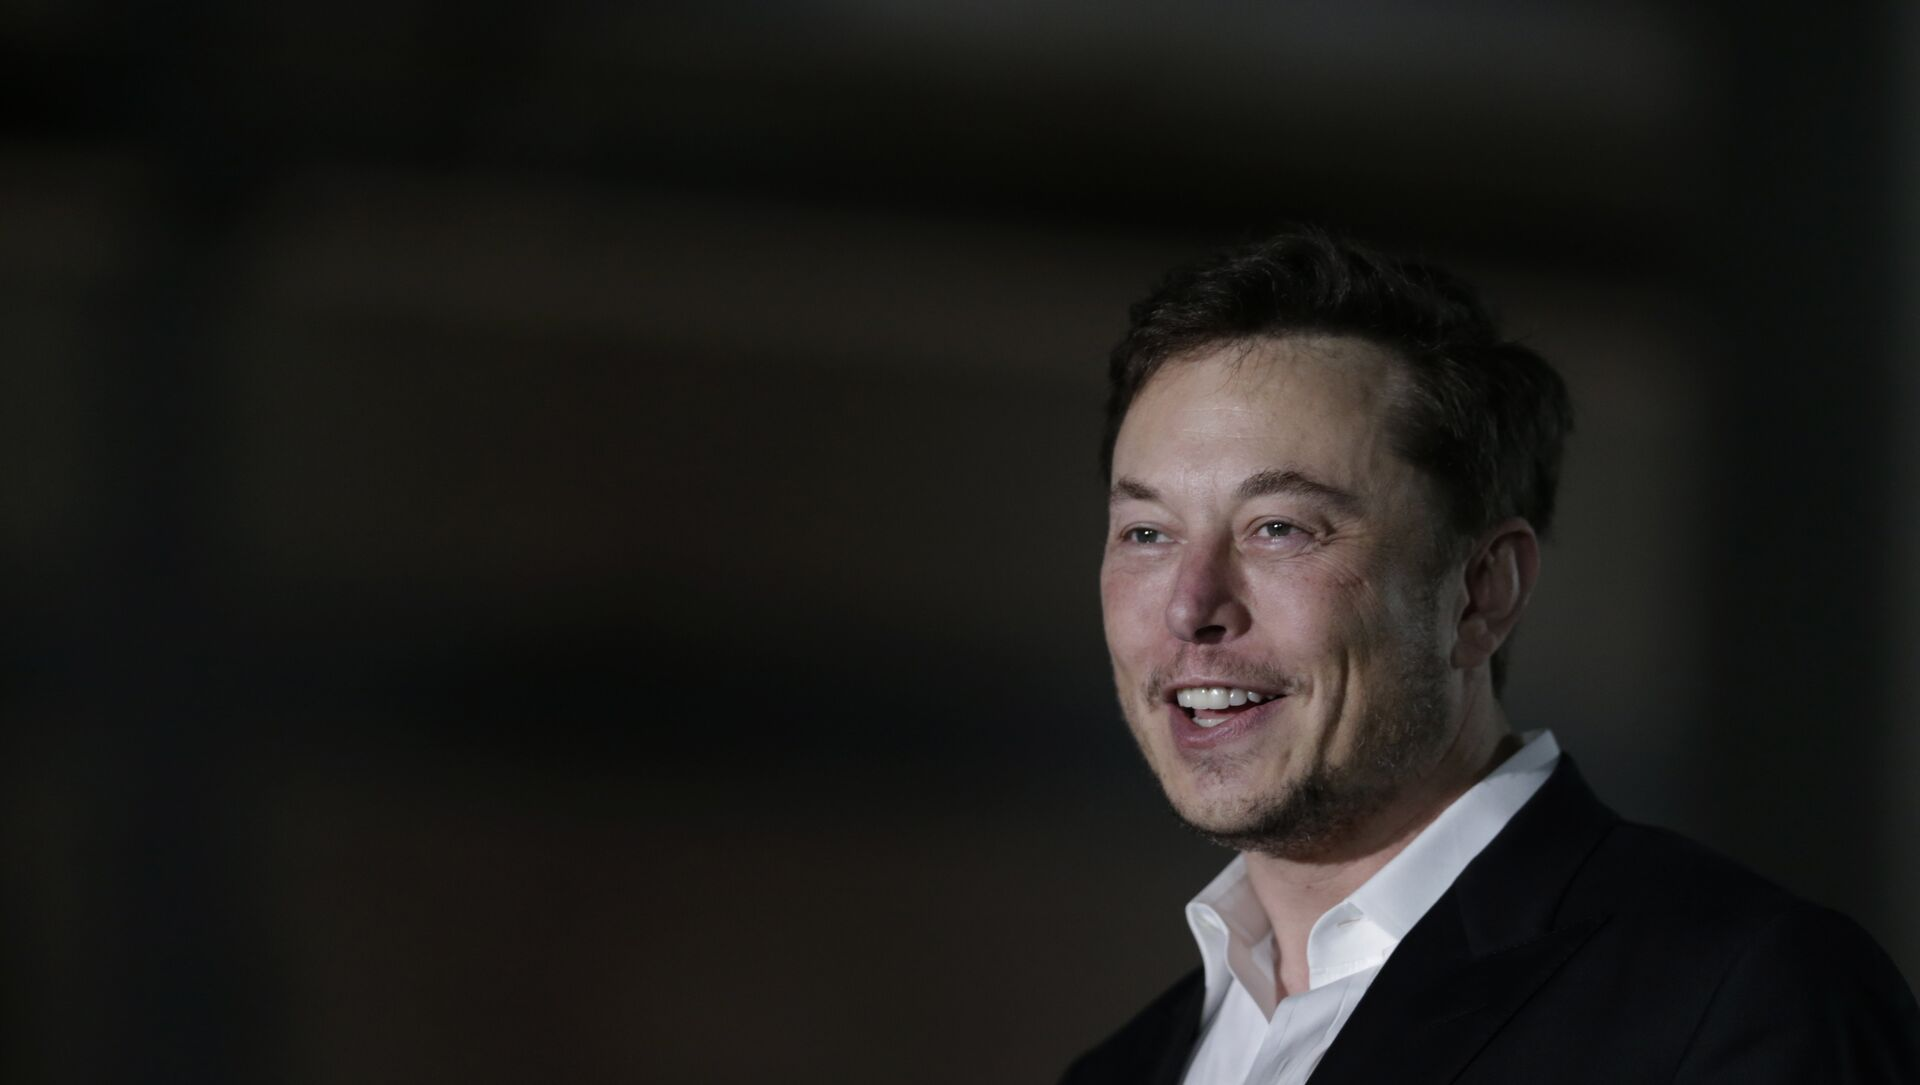 Tesla CEO and founder of the Boring Company Elon Musk speaks at a news conference, Thursday, June 14, 2018, in Chicago. The Boring Company has been selected to build a high-speed underground transportation system that it says will whisk passengers from downtown Chicago to O'Hare International Airport in mere minutes - Sputnik International, 1920, 29.07.2021